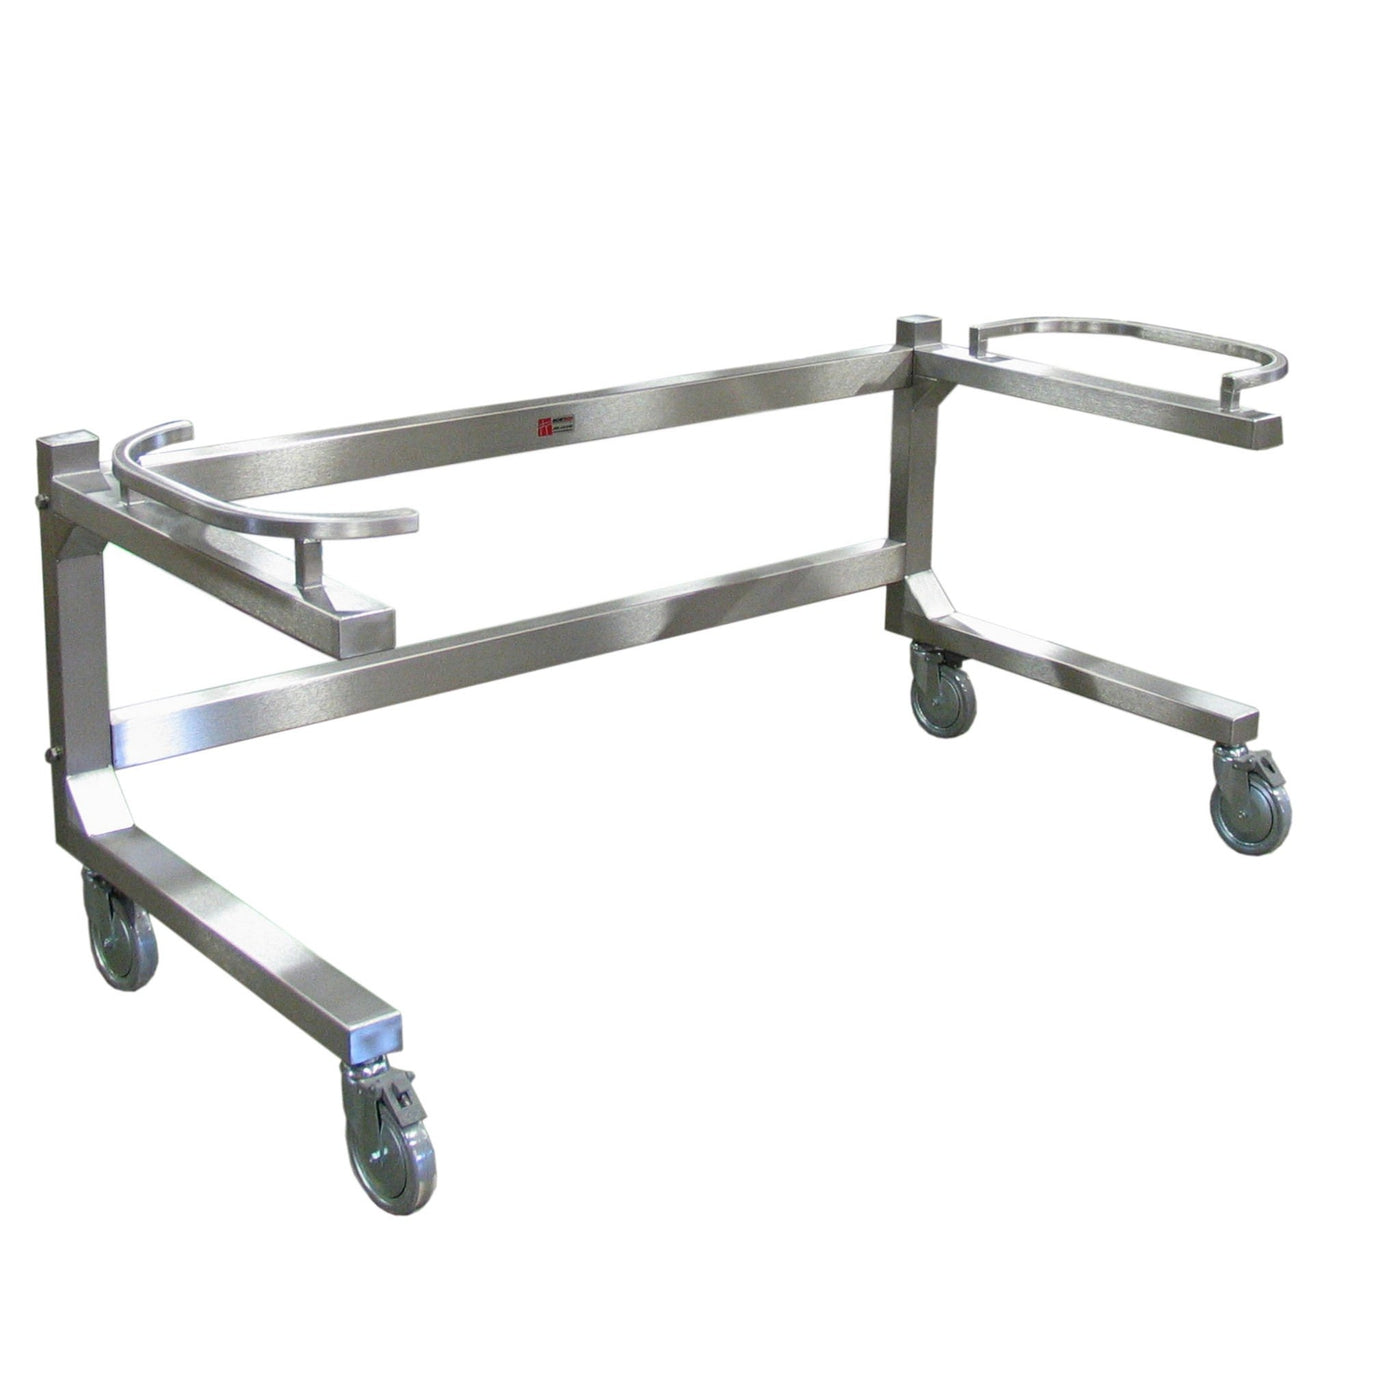 C-Arm Lateral Access Autopsy Carrier-Body Transporter-Mortech Manufacturing Company Inc. Quality Stainless Steel Autopsy, Morgue, Funeral Home, Necropsy, Veterinary / Anatomy, Dissection Equipment and Accessories